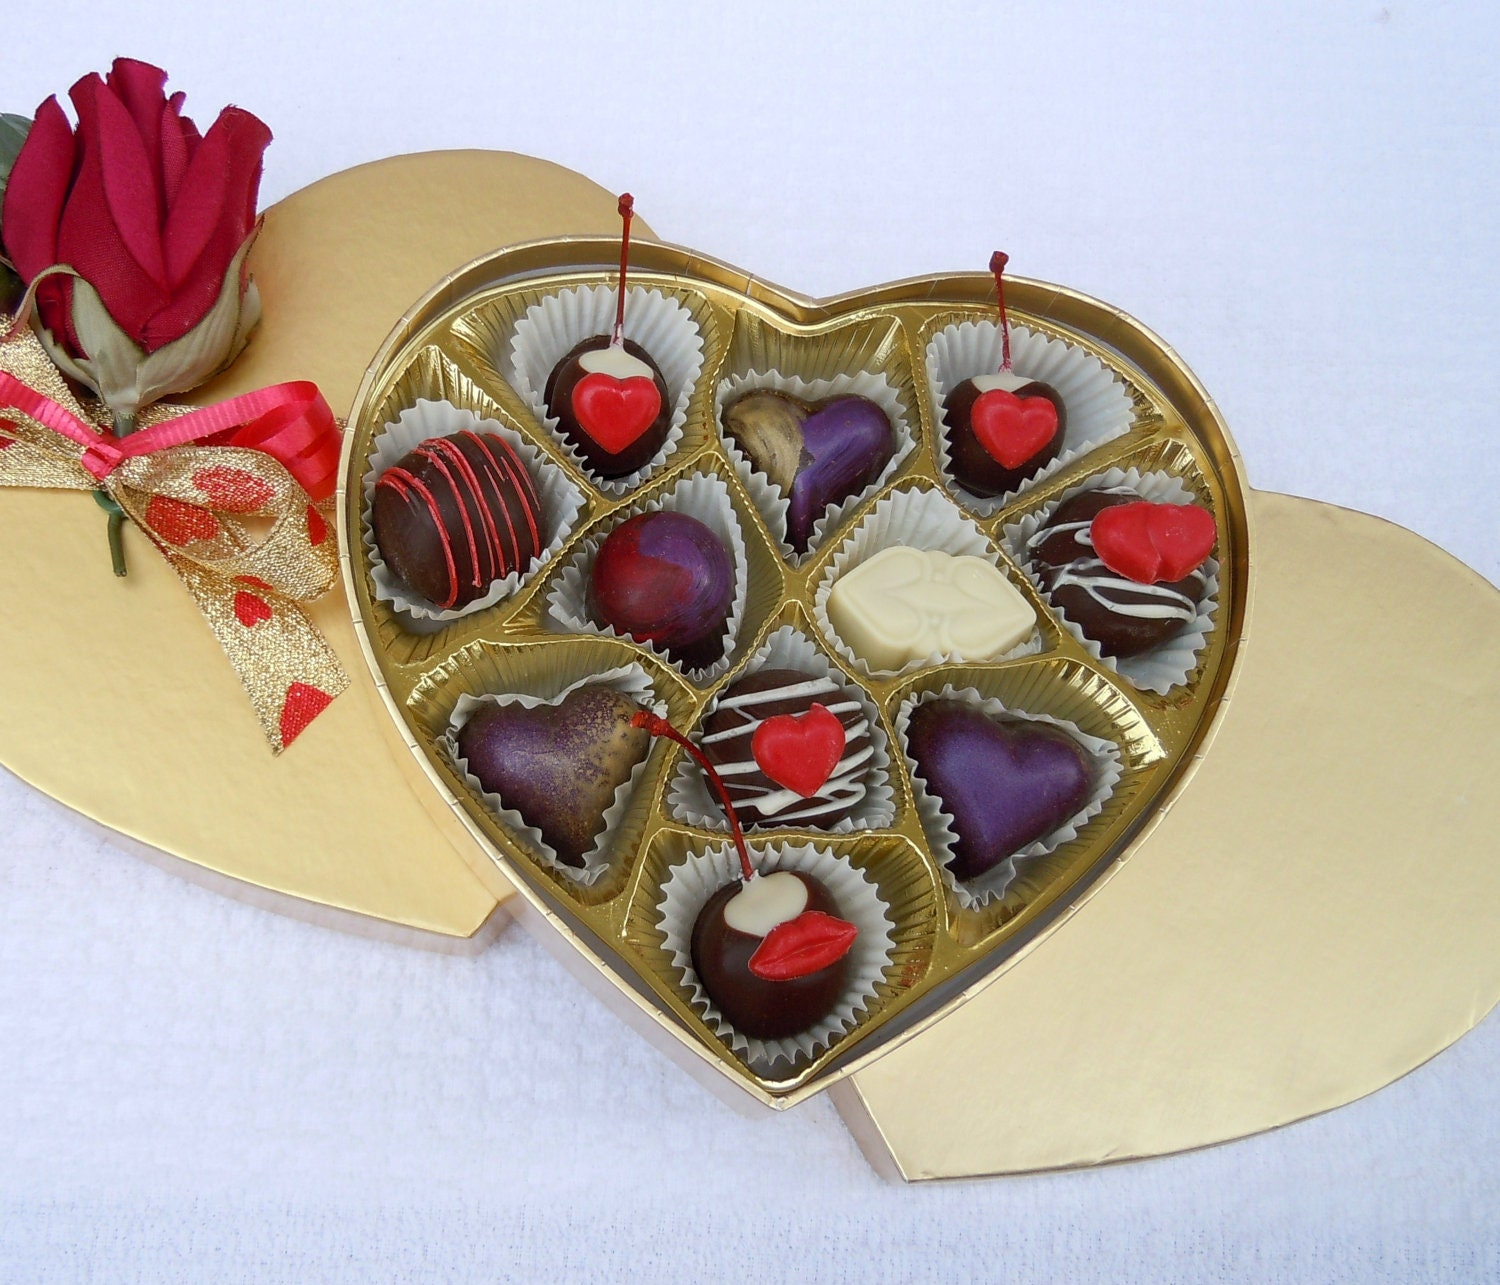 Gold Valentines Day Heart with Truffles and Cherries